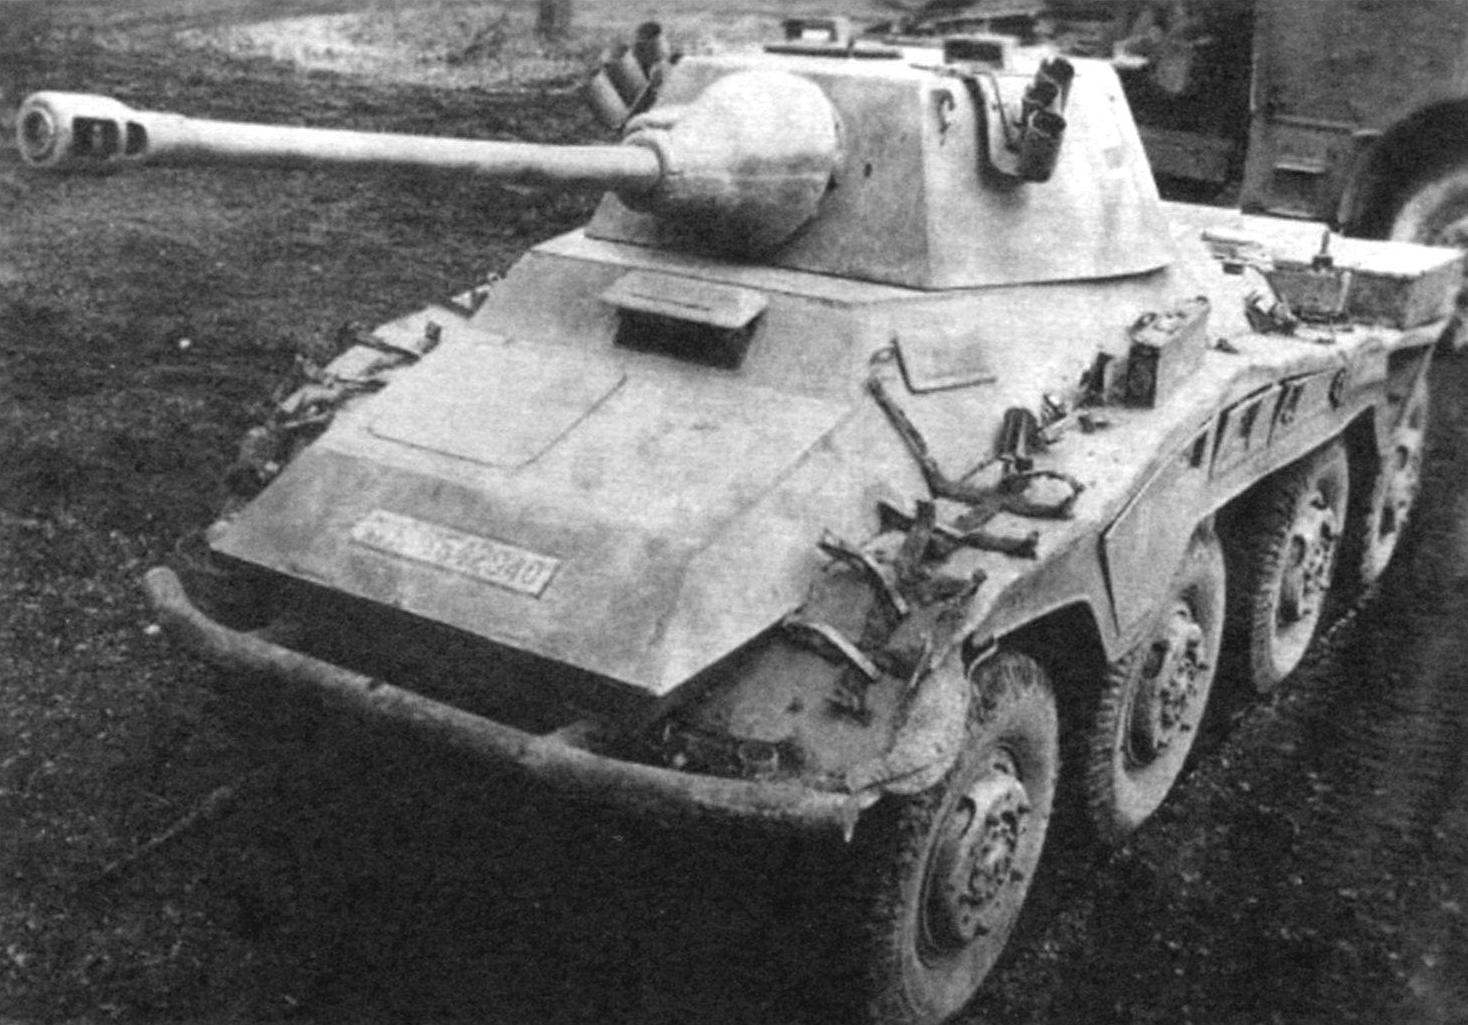 Armored Car Sd.Kfz.234/2 is considered the best heavy armored car of the Second world war